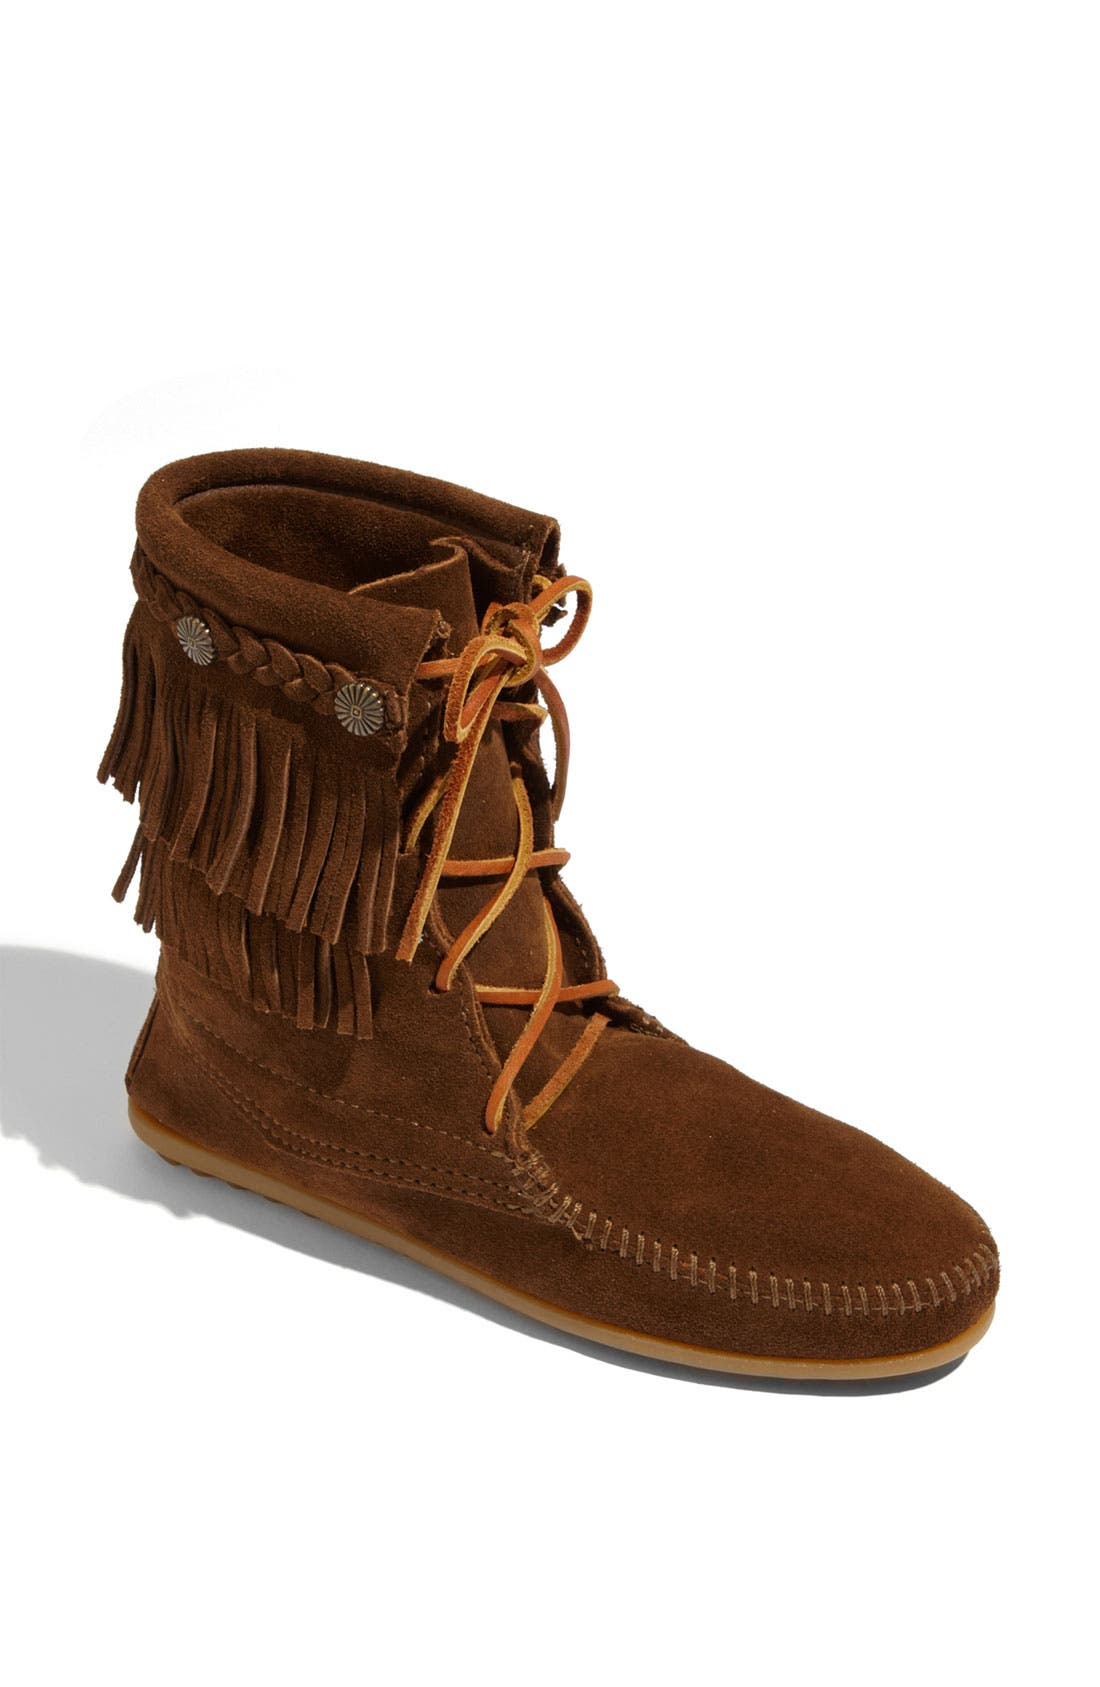 'Tramper' Double Fringe Moccasin Boot,                         Main,                         color, Dusty Brown